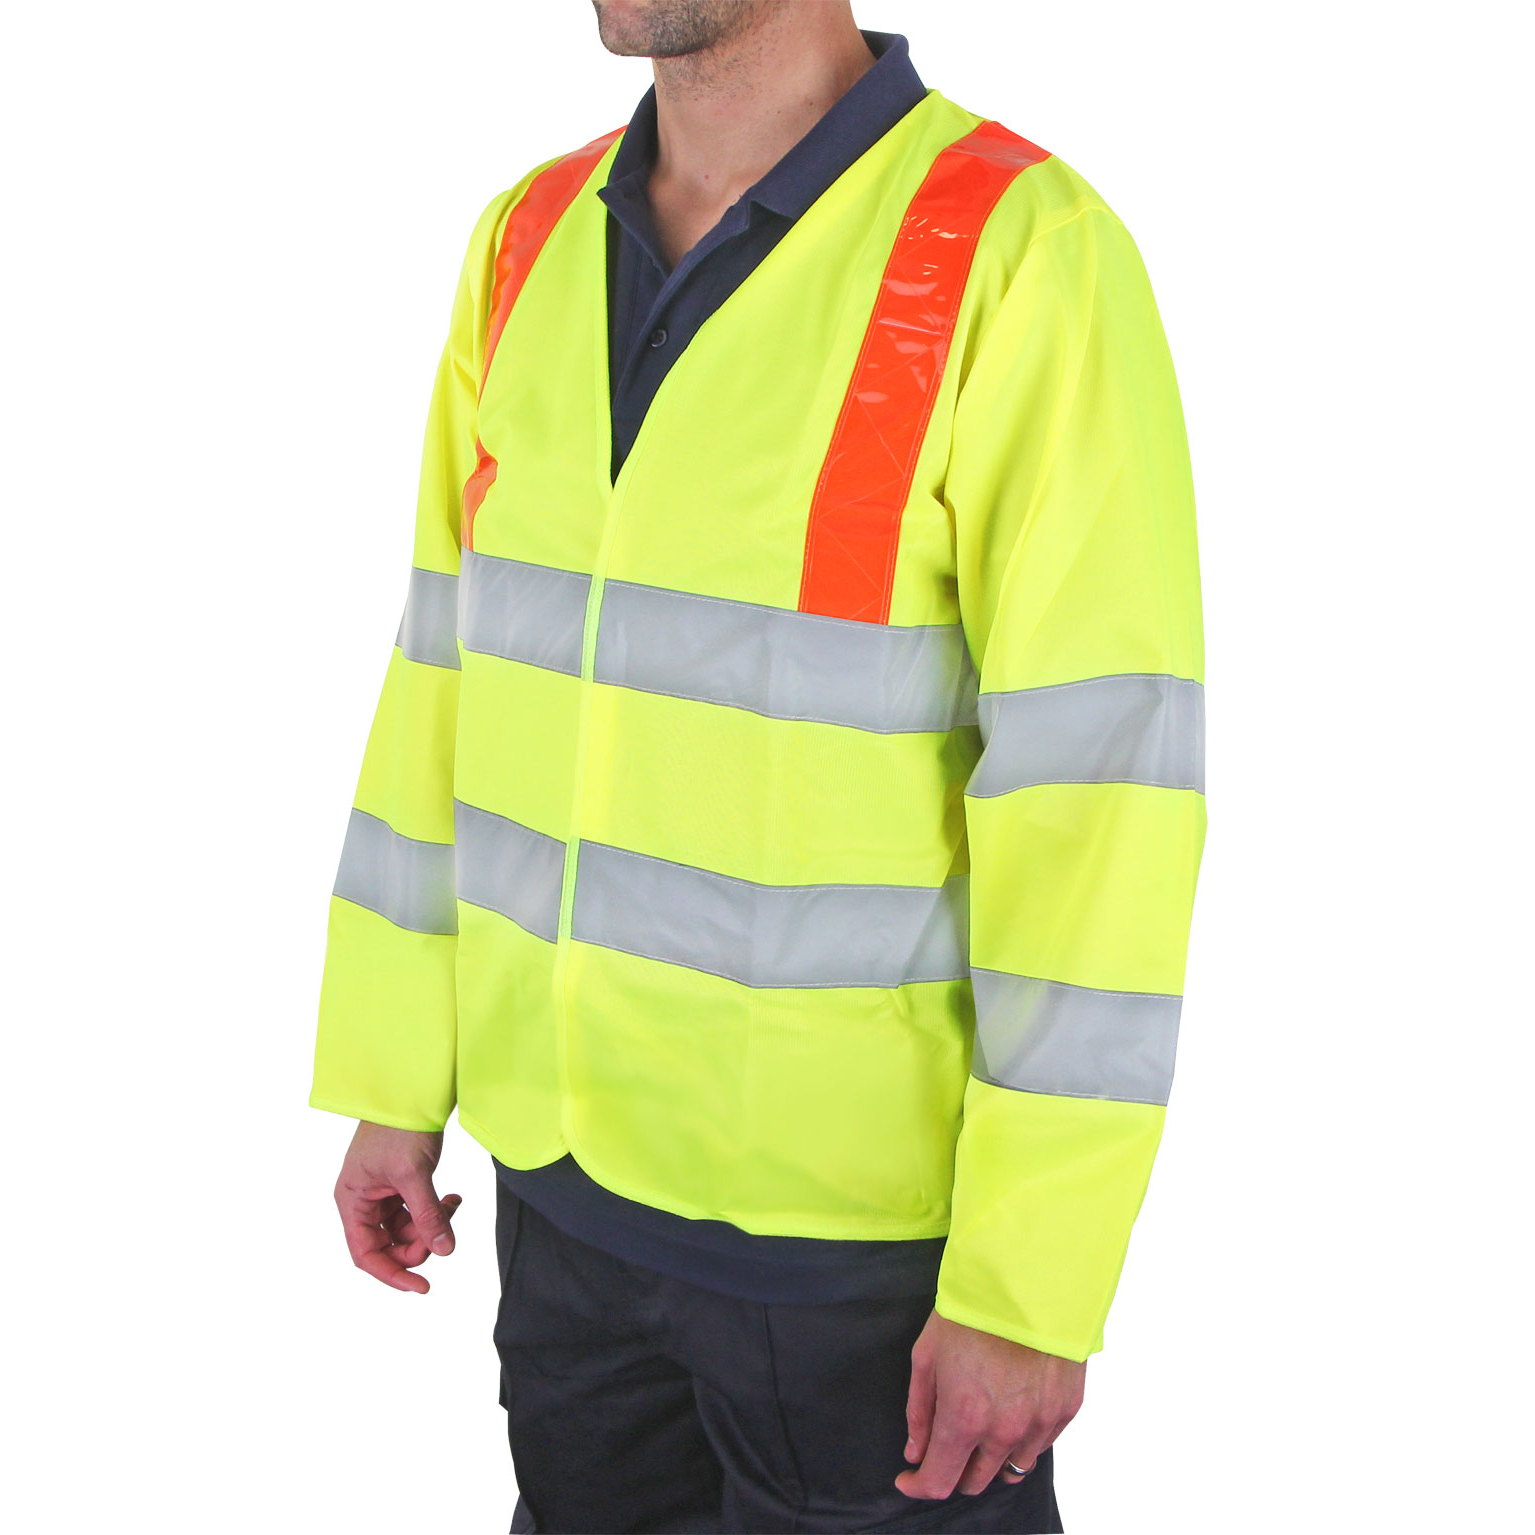 B-Seen High Visibility Long Sleeved Jerkin 5XL Saturn Yellow/Red Ref PKJENG(RT)5XL Up to 3 Day Leadtime